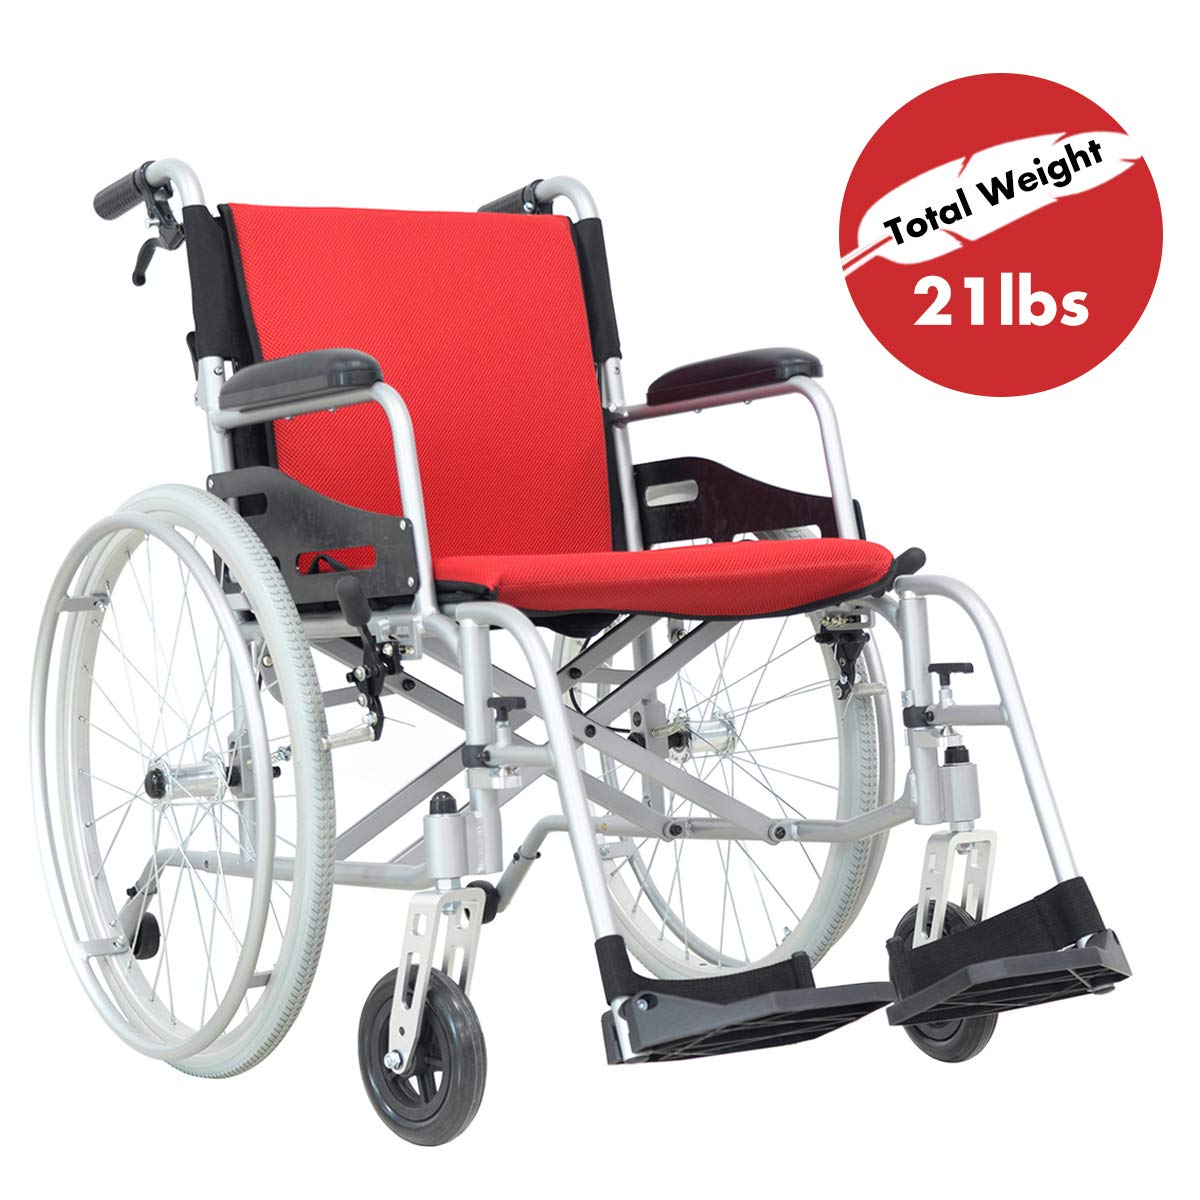 Hi-Fortune Wheelchair 21lbs Lightweight Self-propelled Chair with Travel Bag and Cushion, Portable and Folding with Magnesium Alloy, 17.5'' Seat, Red, 21lbs by Hi-Fortune